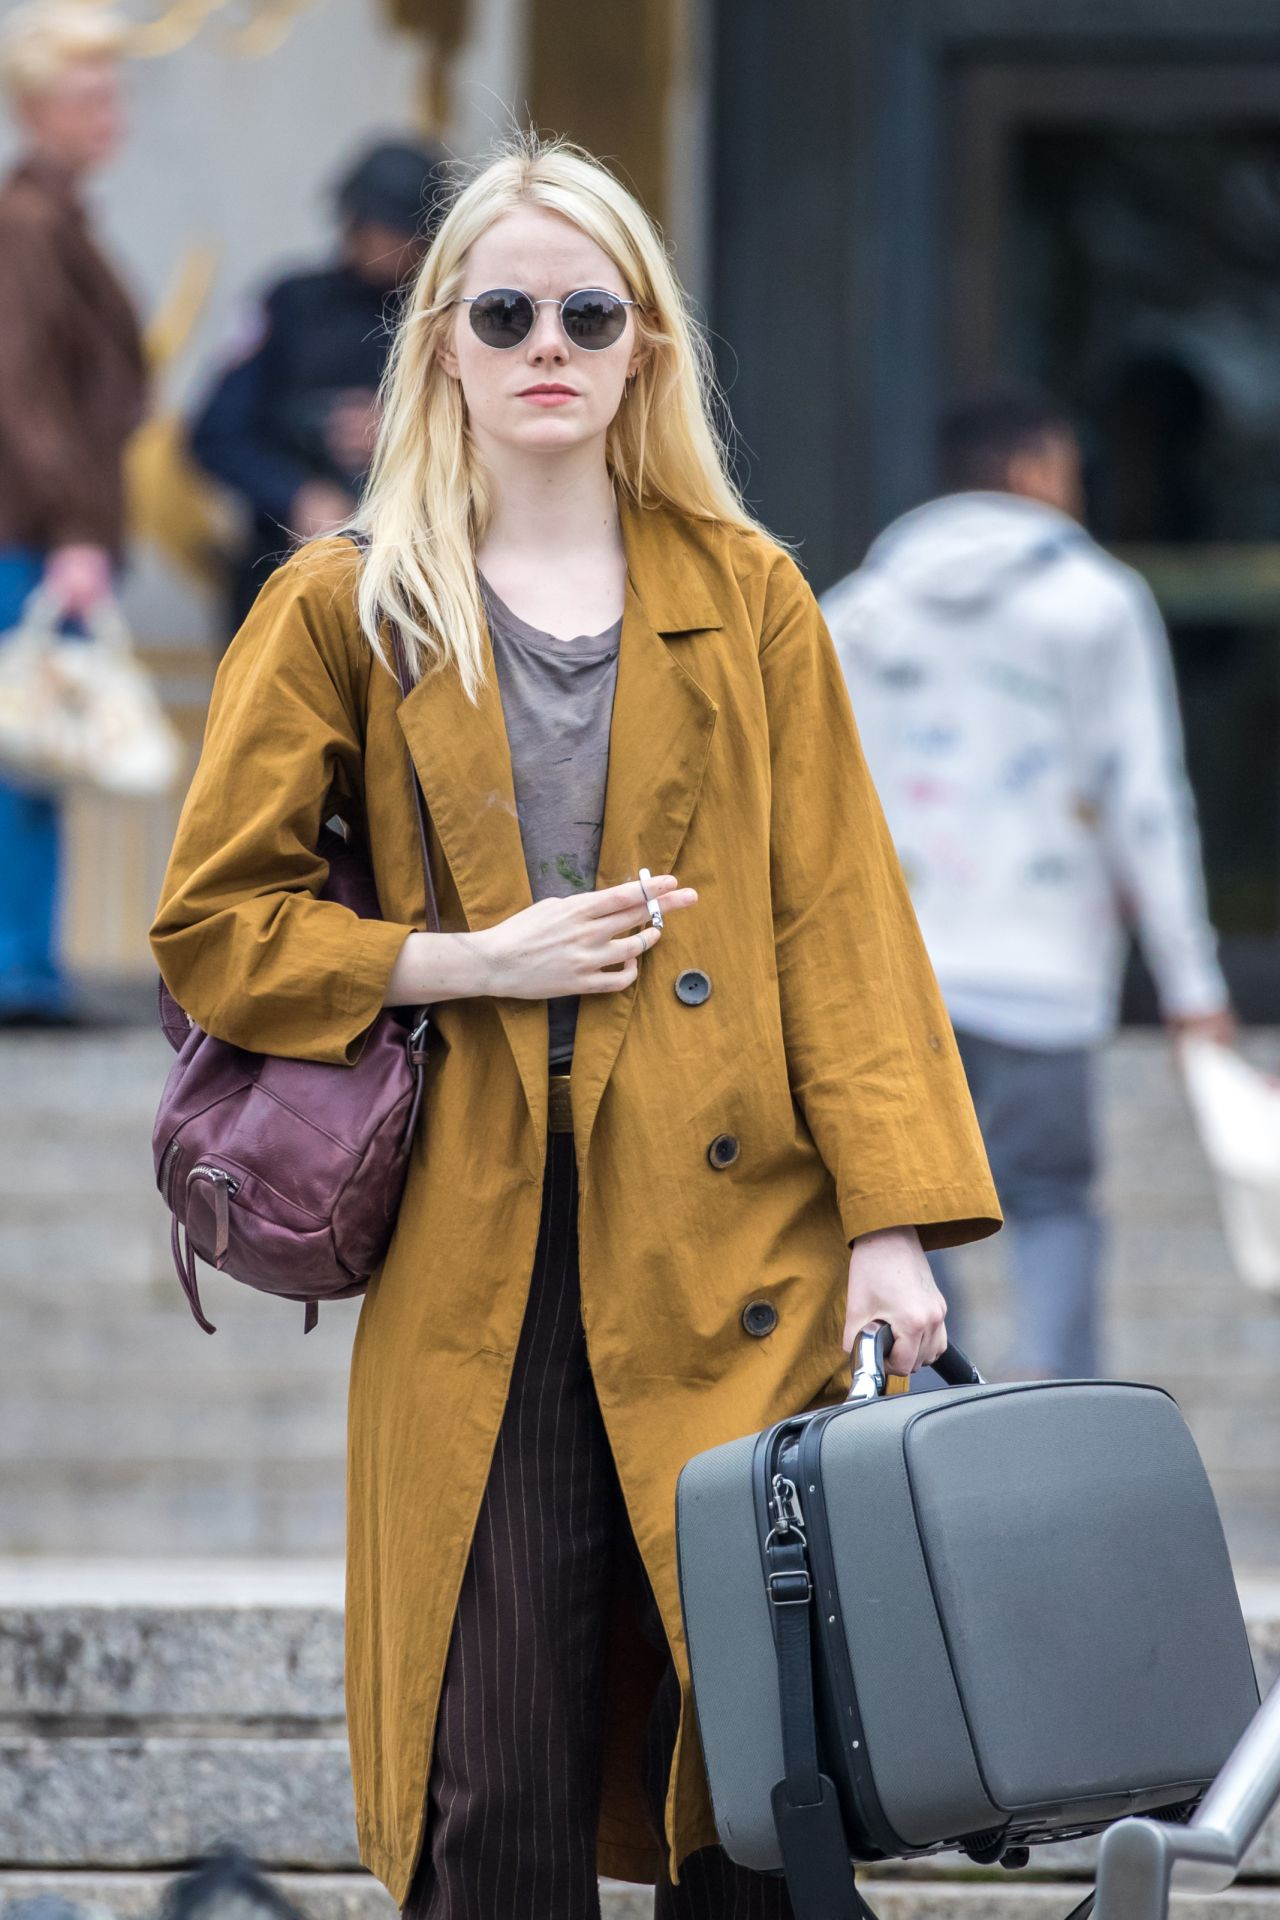 Emma stone shooting scenes on the set of maniac in long island nyc naked (75 pic)